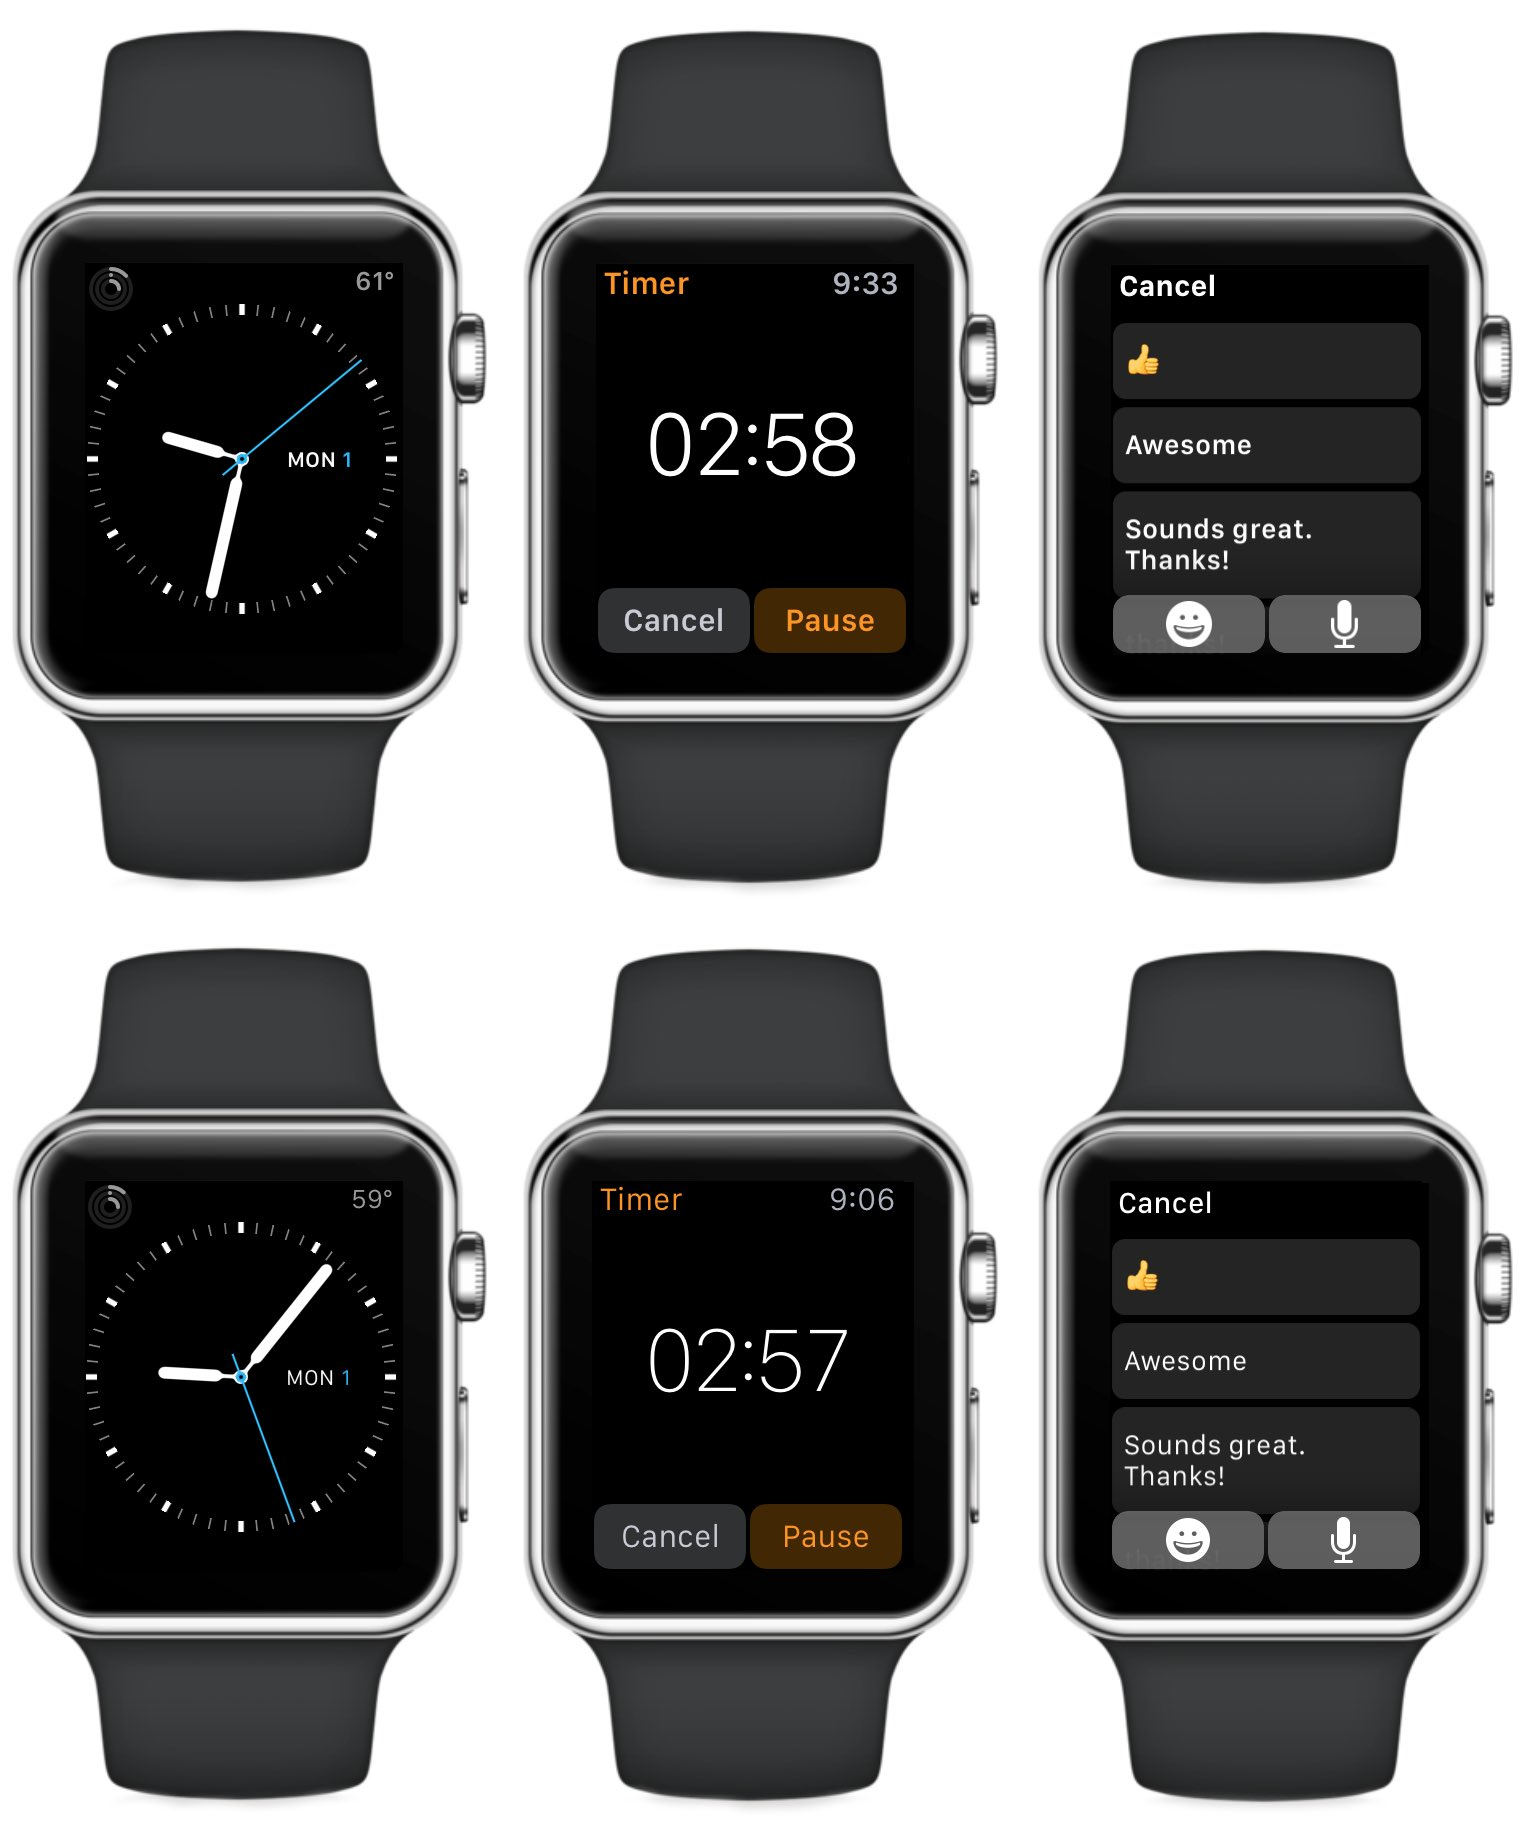 Apple Watch with bold and unbold text